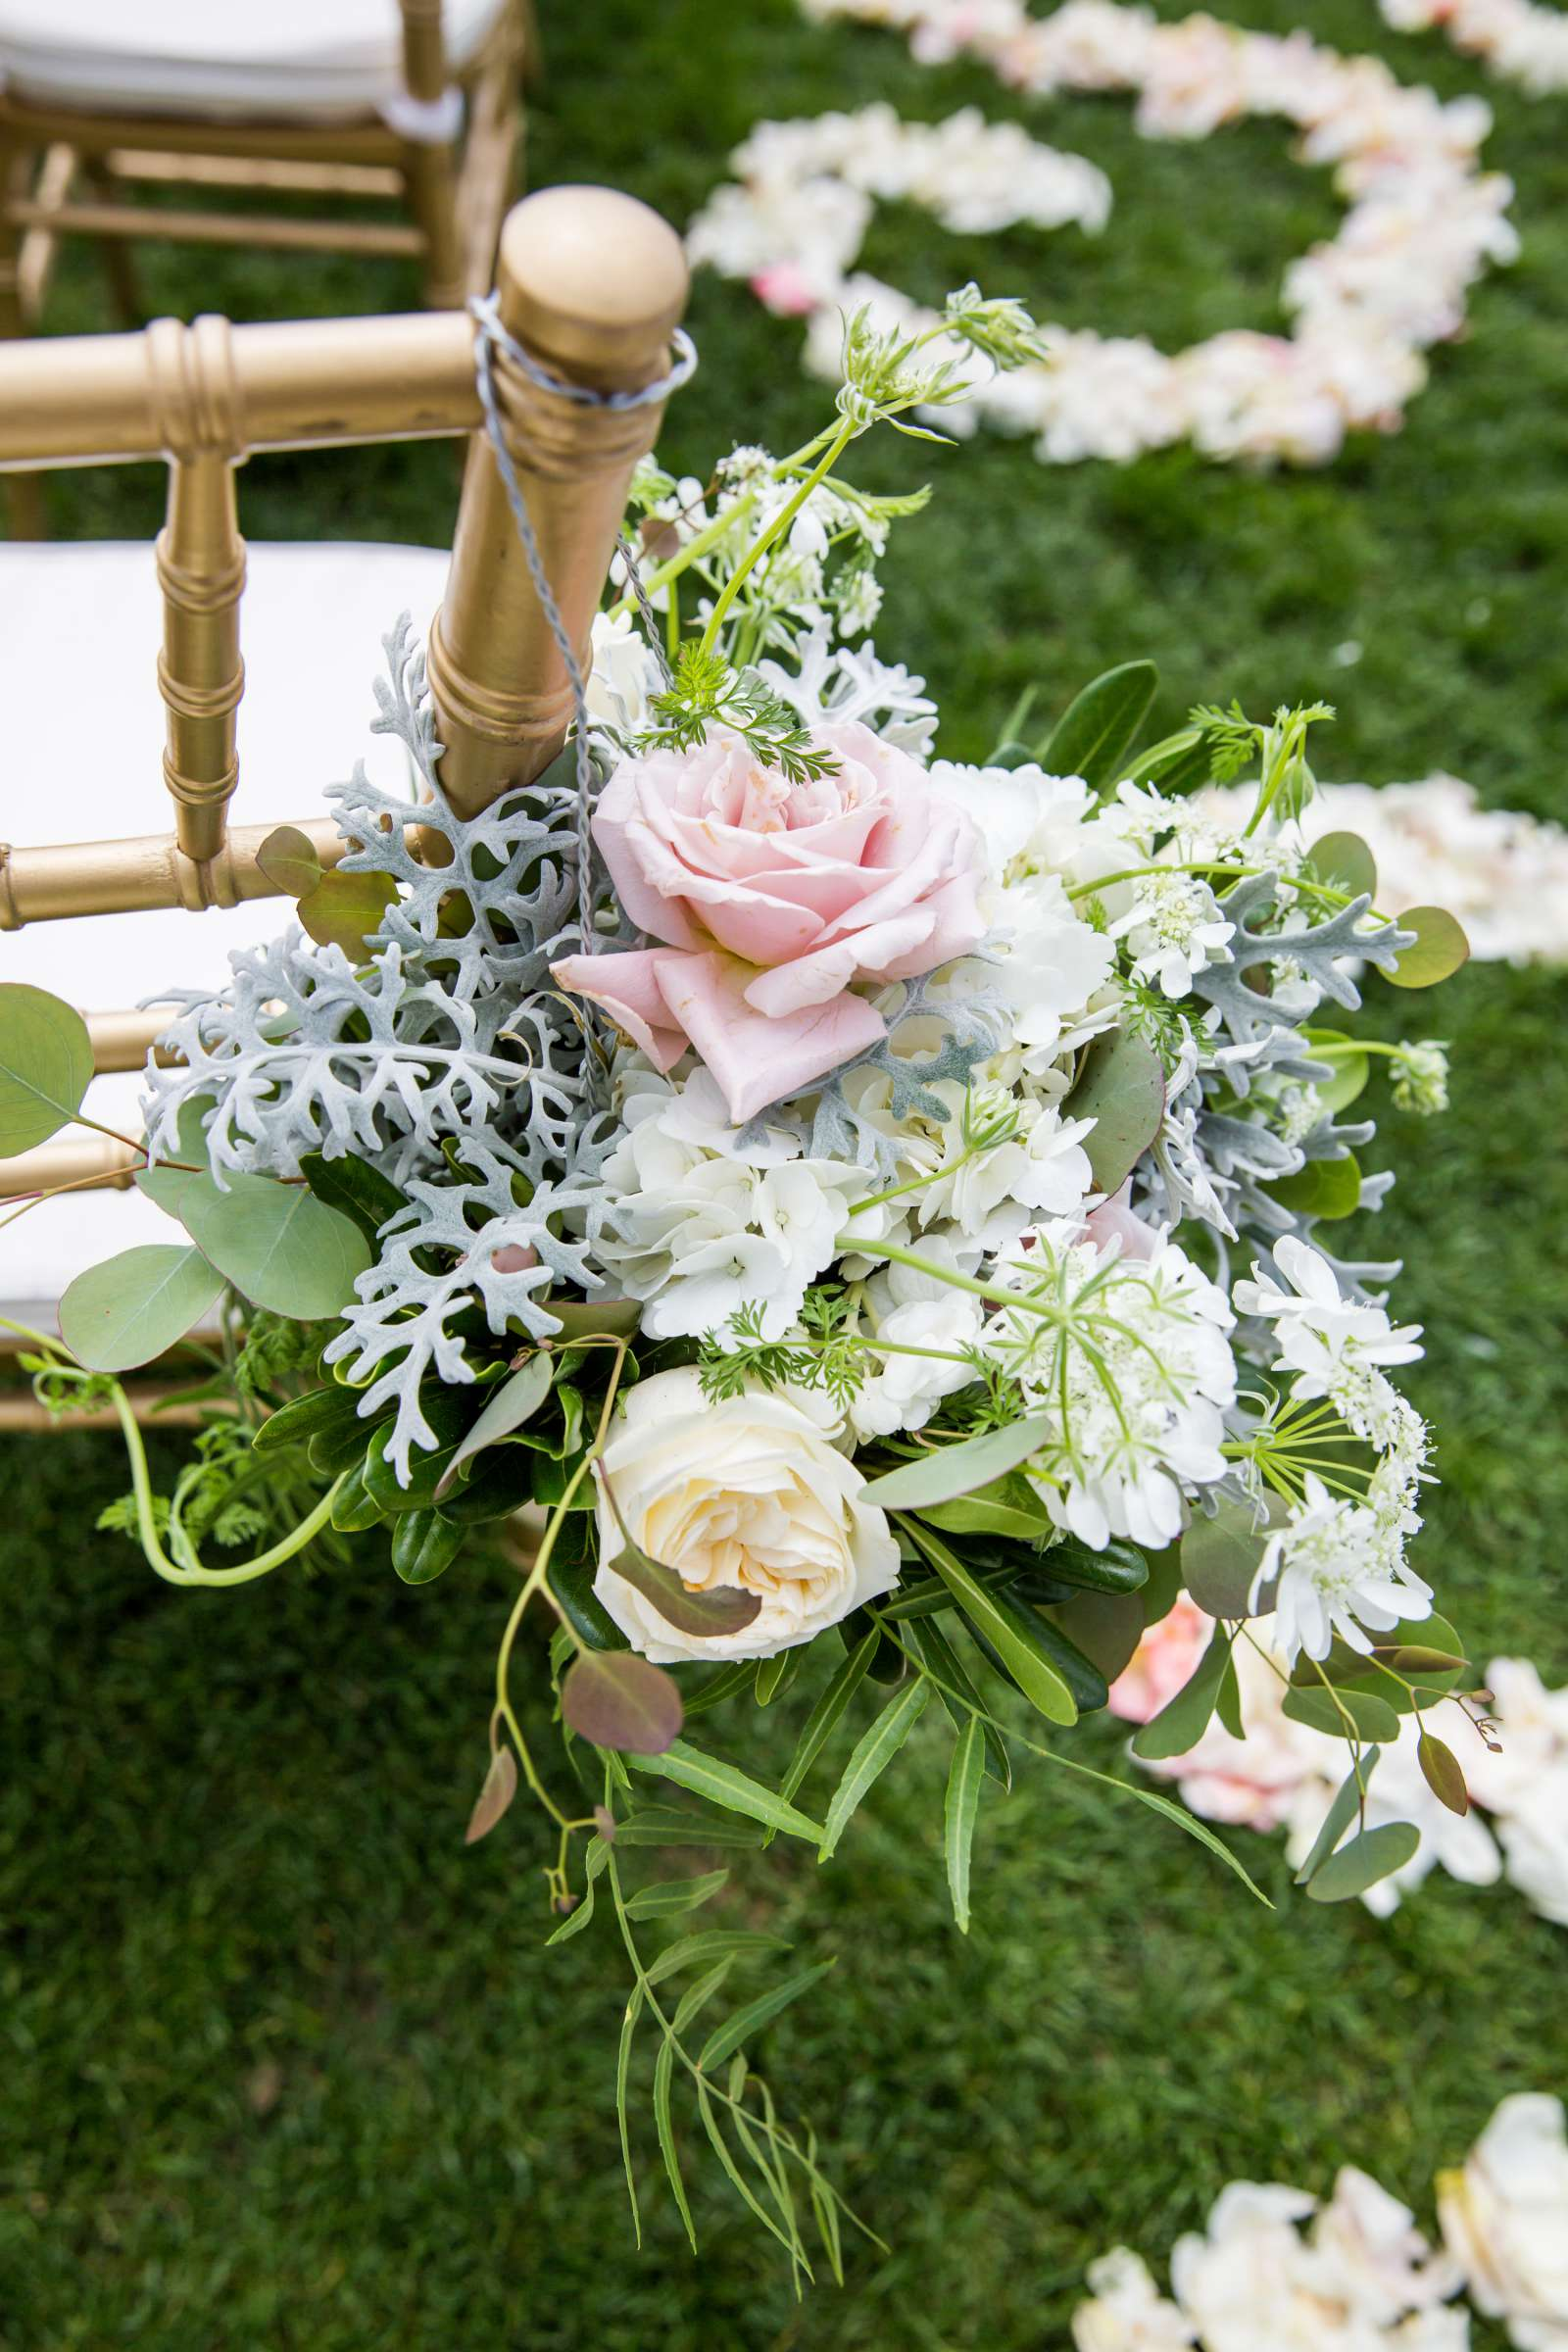 Scripps Seaside Forum Wedding coordinated by Lavish Weddings, Cindy and Justin Wedding Photo #381923 by True Photography